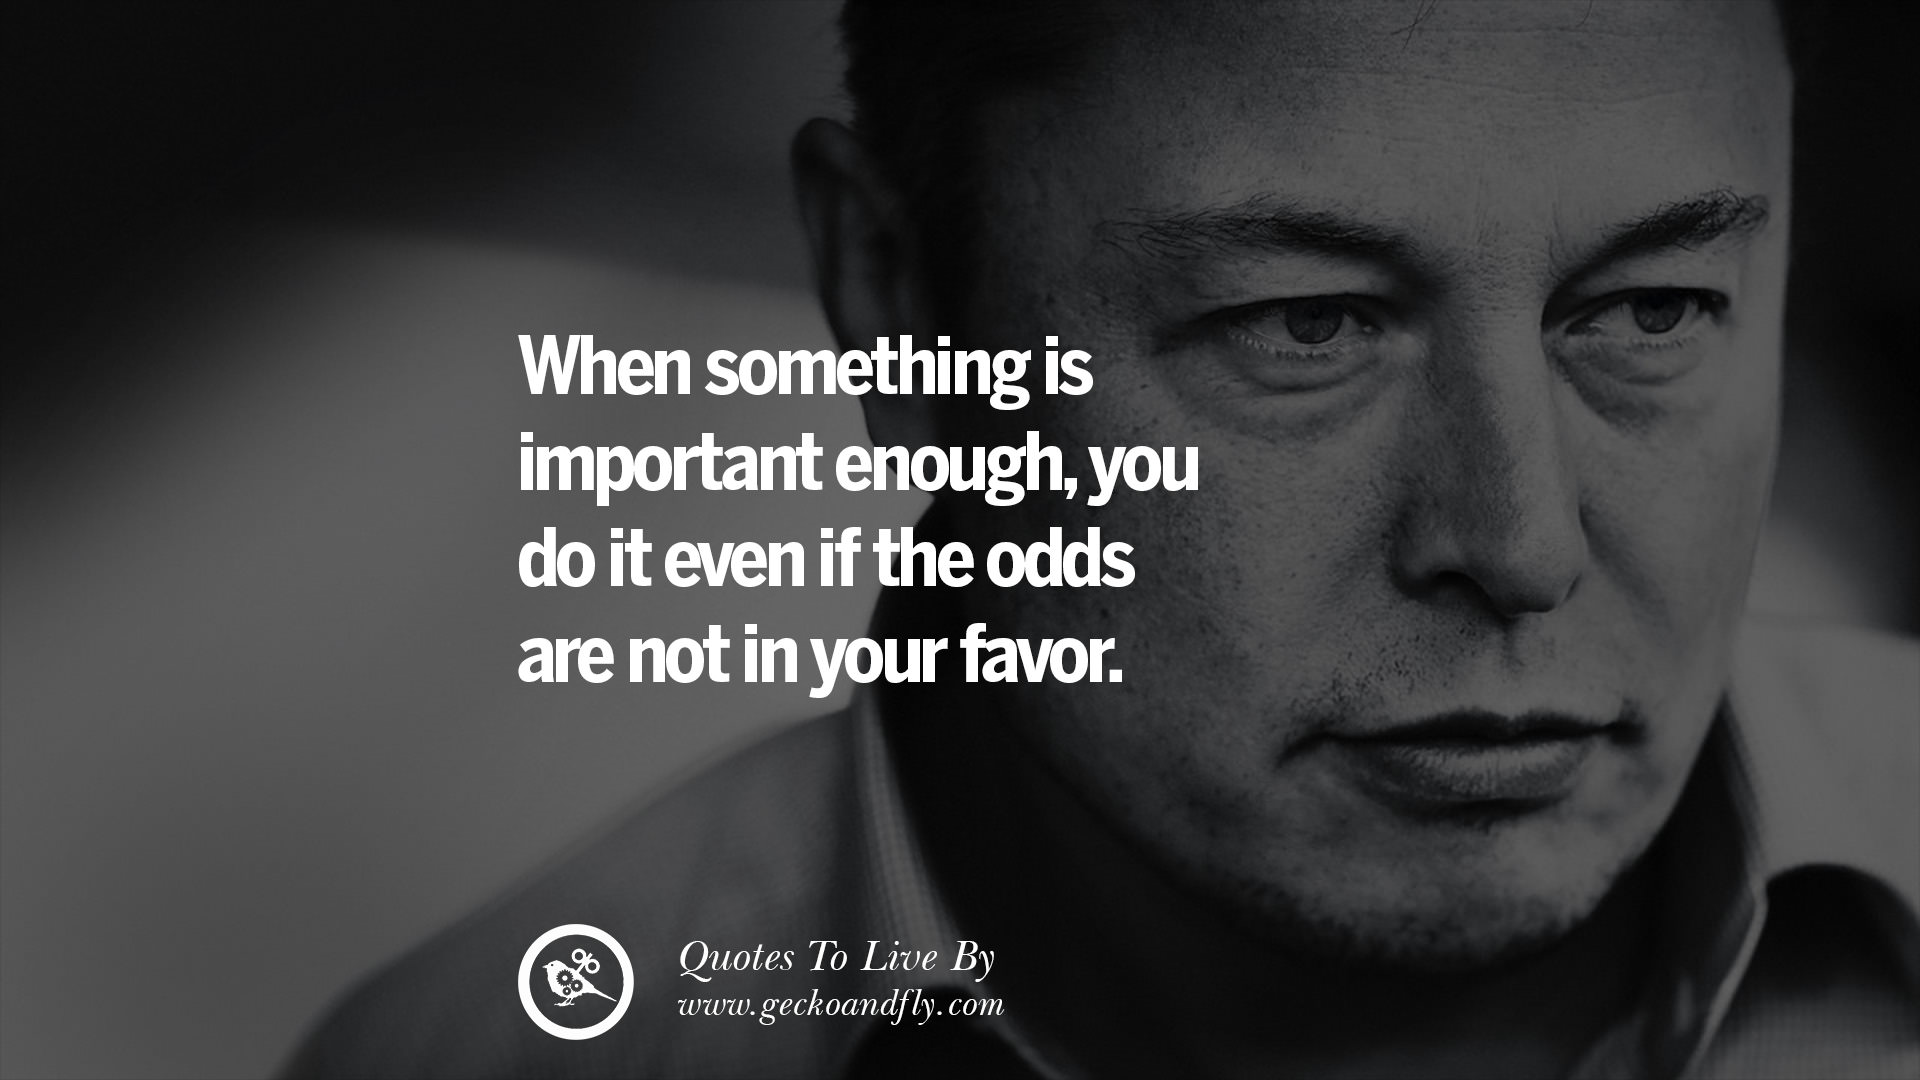 Motivational Quotes On Attitude Wallpapers 20 Elon Musk Quotes On Business Risk And The Future